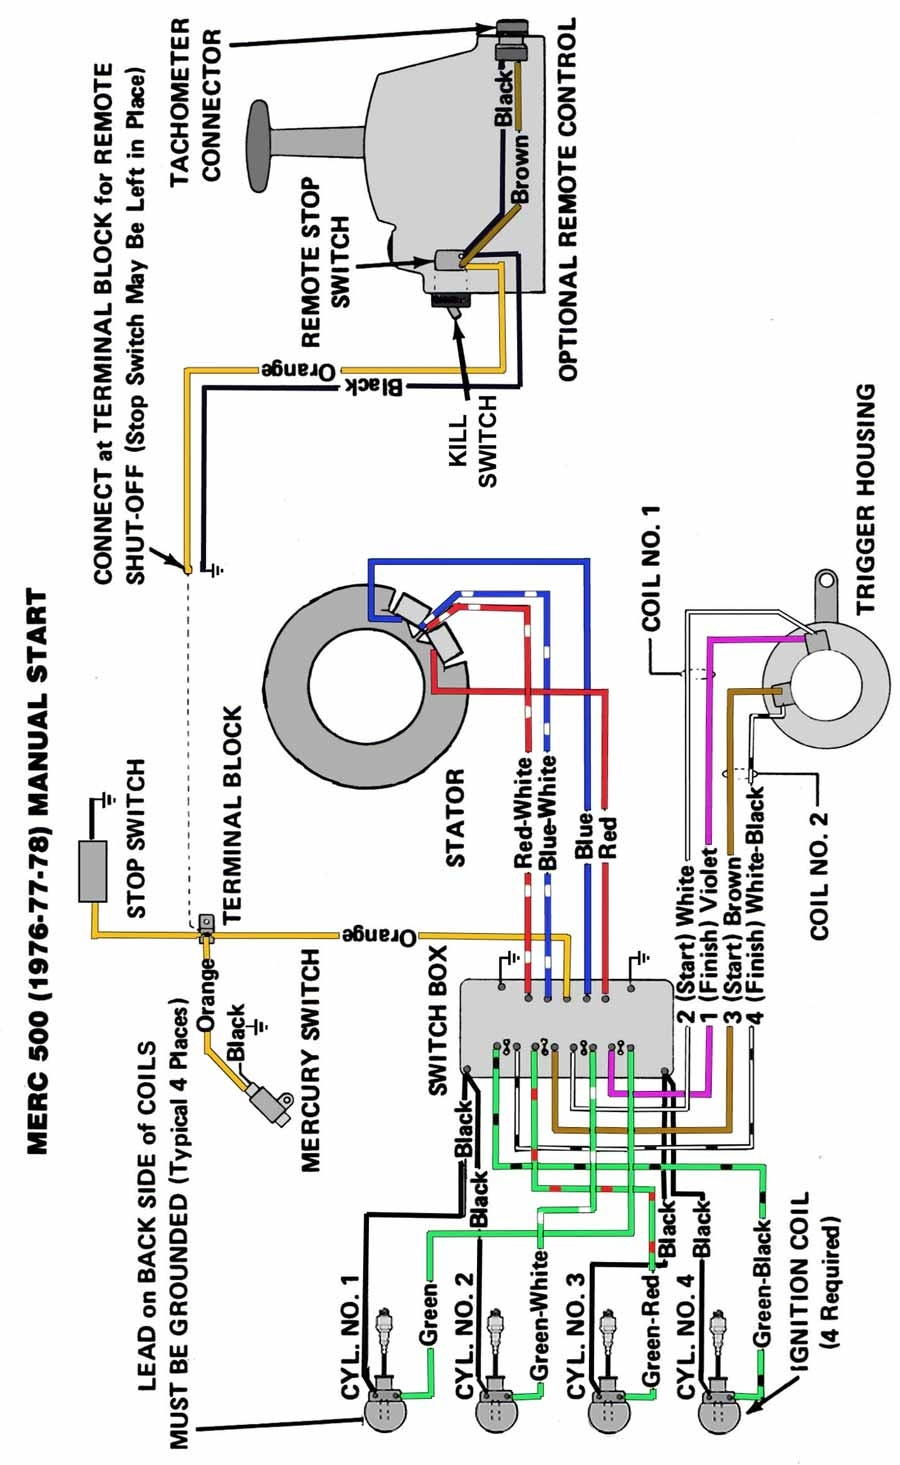 mercury outboard wiring diagrams mastertech marin intended for 76 evinrude wiring diagram?resize\\\\\\\\\\\\\\\=665%2C1082\\\\\\\\\\\\\\\&ssl\\\\\\\\\\\\\\\=1 mercury outboard ignition switch diagram color coded wiring Boat Ignition Switch Wiring Diagram at highcare.asia